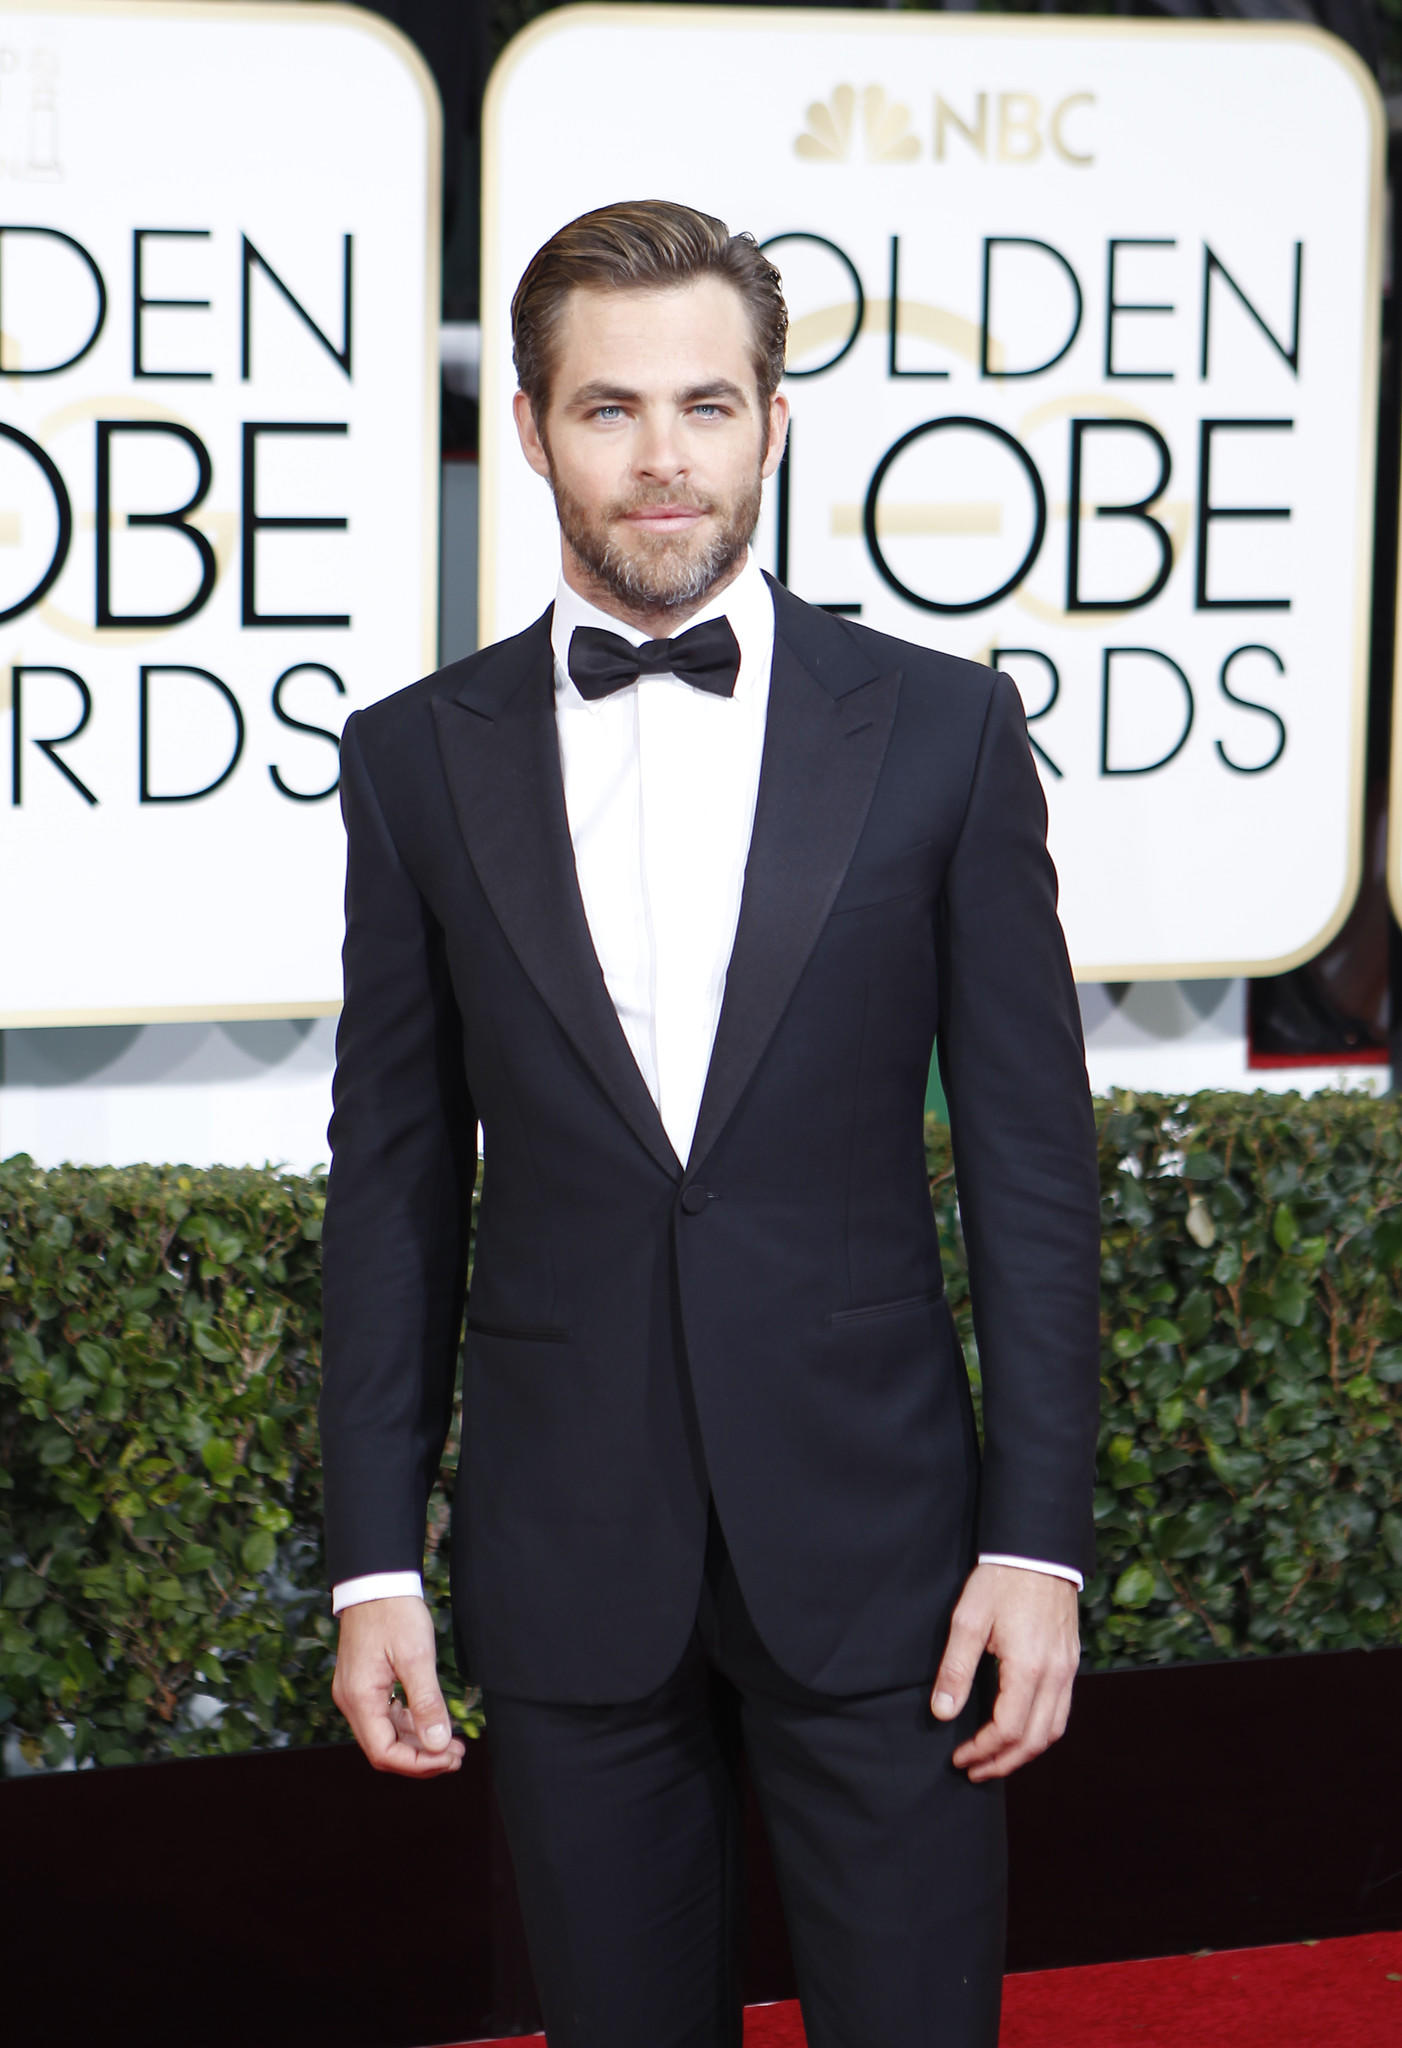 Chris Pine arrives for the 71st Annual Golden Globe Awards show.